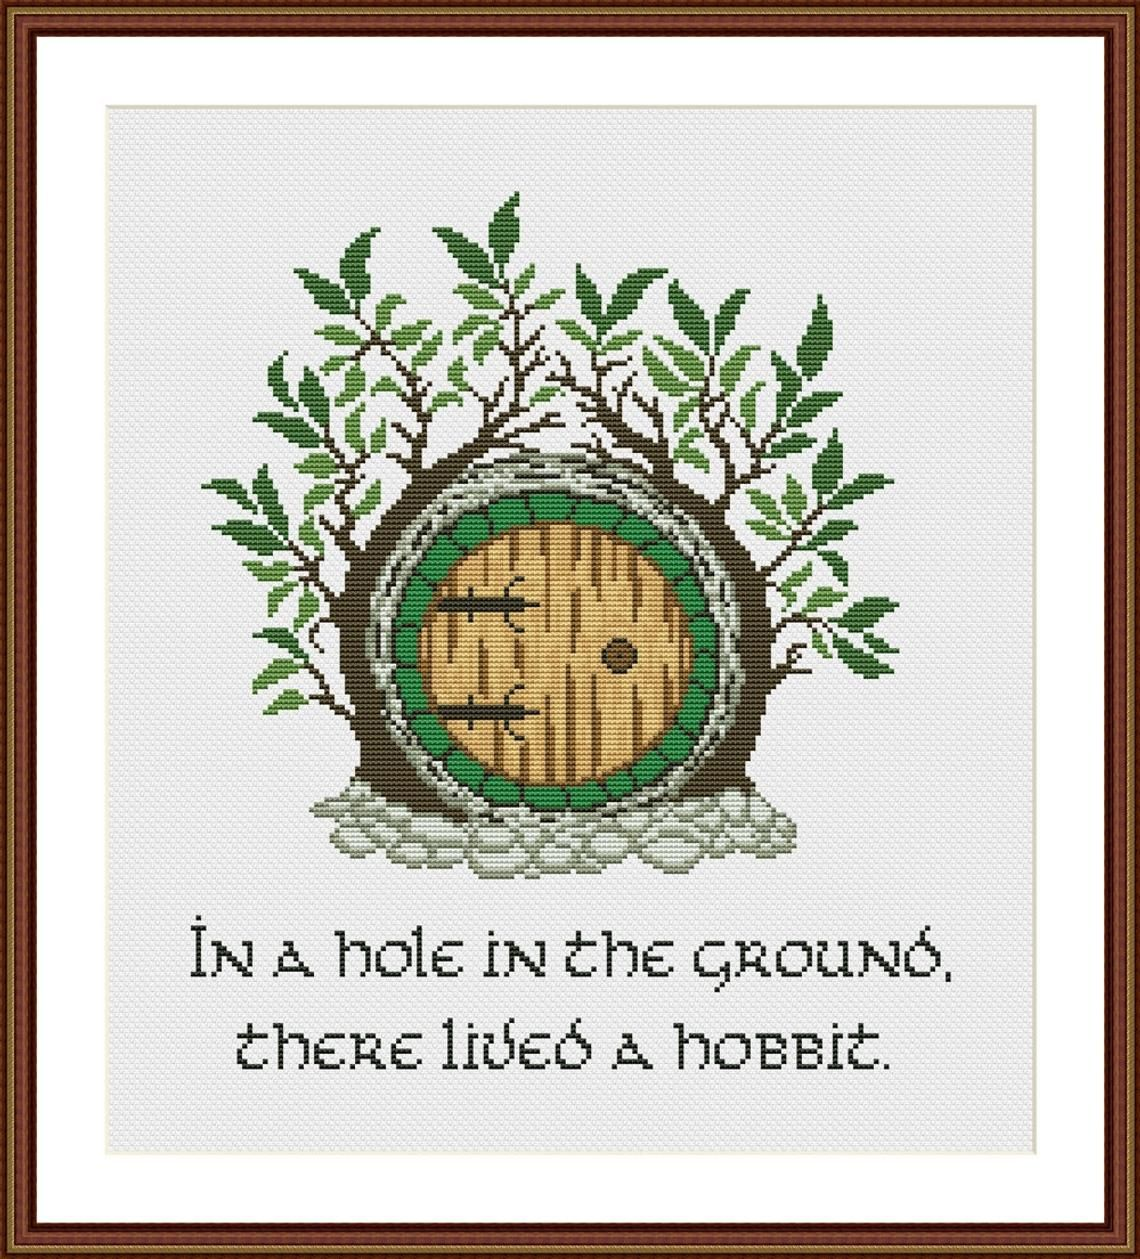 Photo of Hobbit Hole cross stitch pattern Instant Download PDF In A Hole In The Ground, There Lived Hobbit